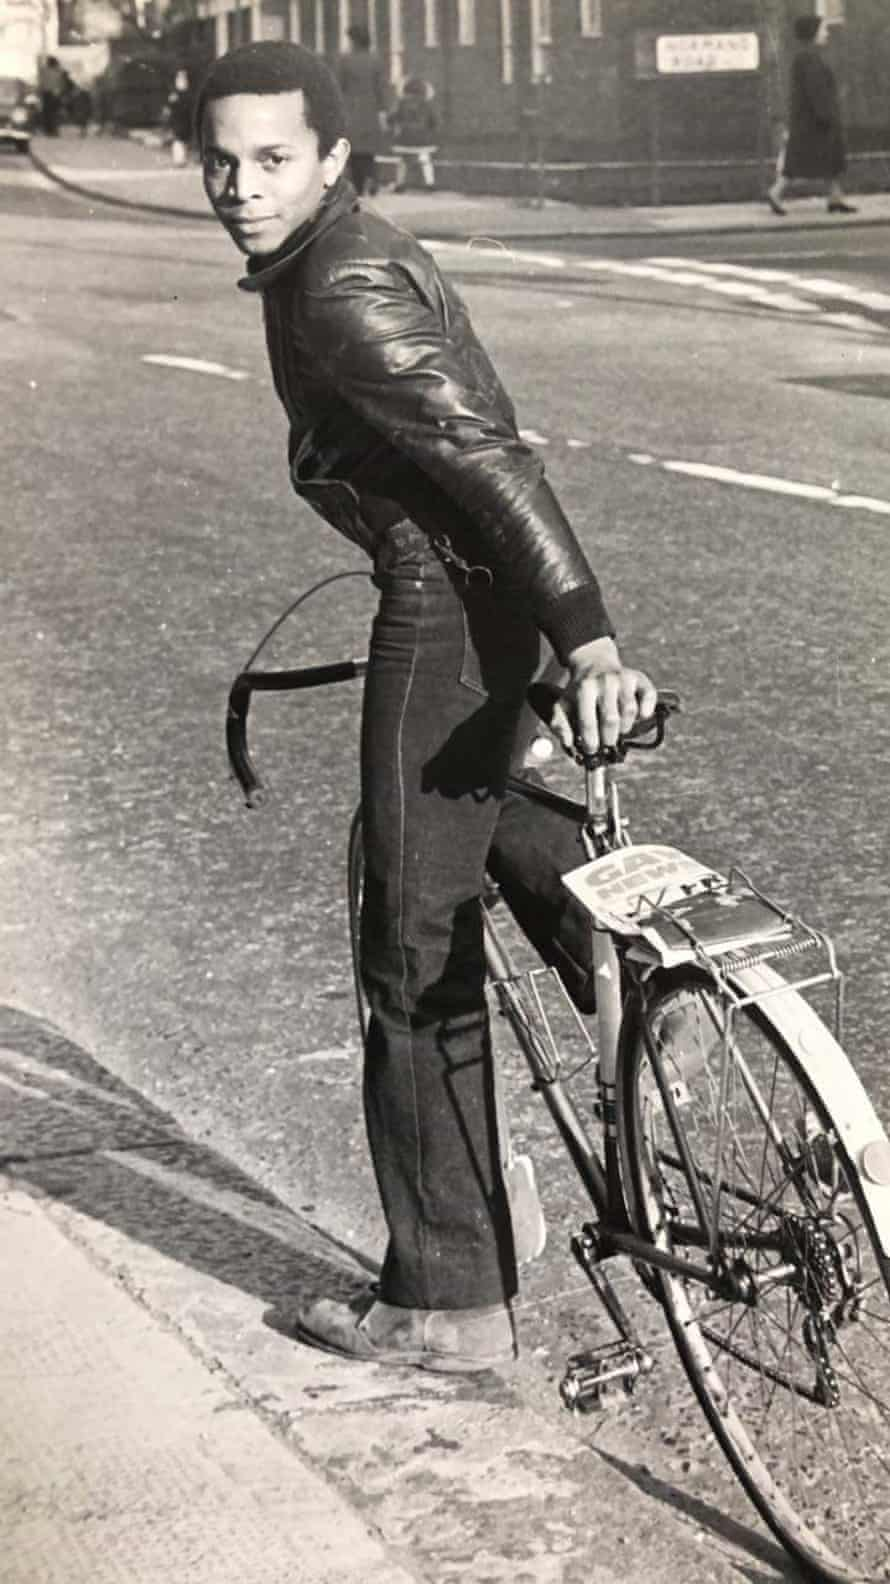 Ted Brown on a bike, early 1970s.